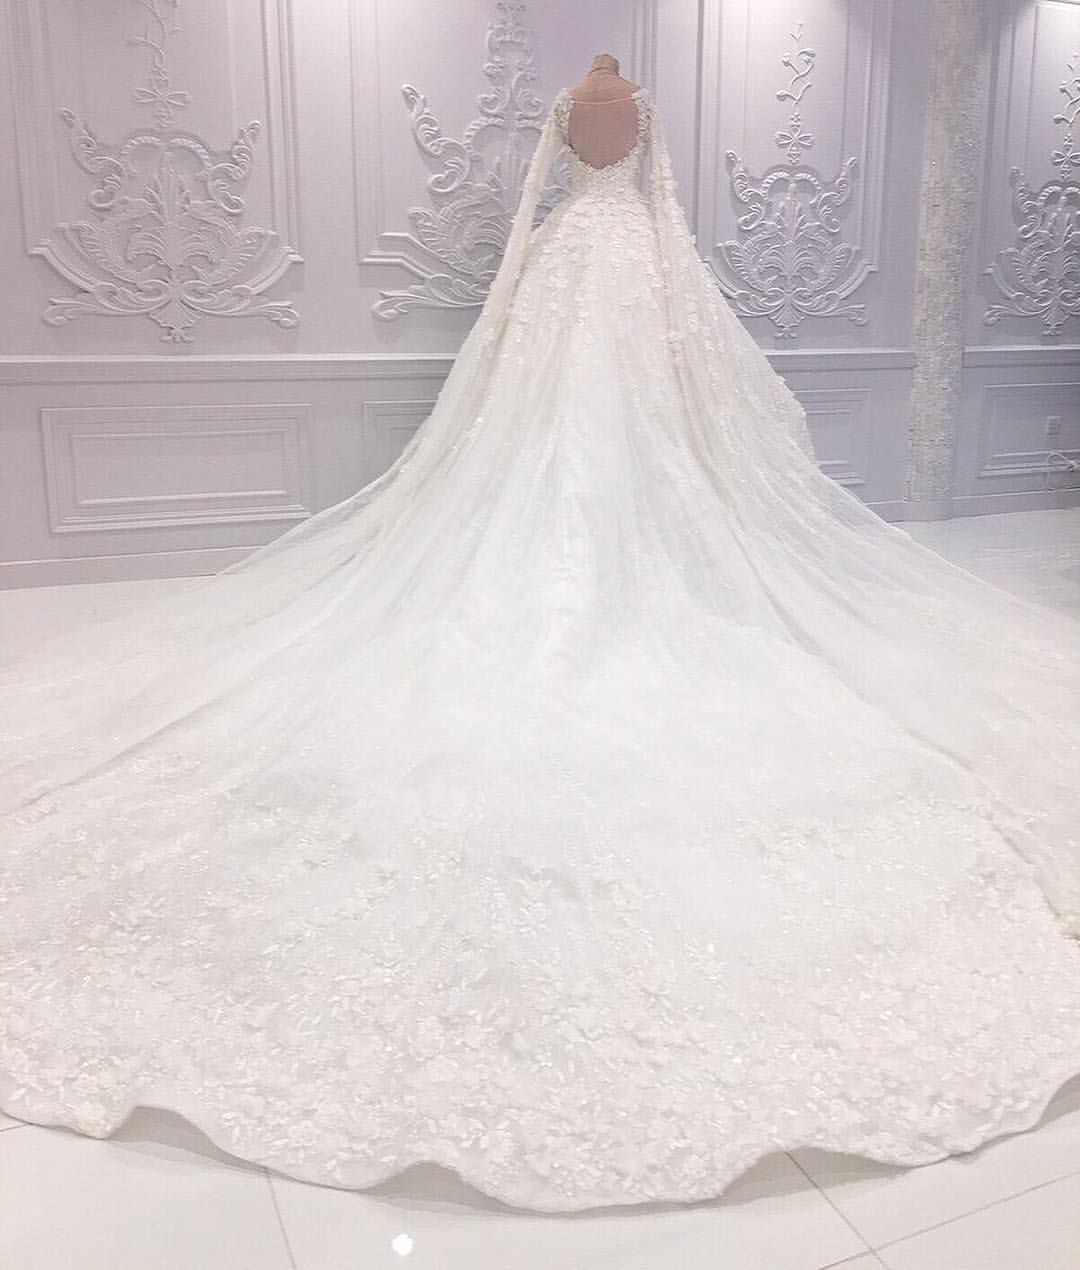 Spectacular Wedding Gown With A Never Ending Floor Sweeping Sleeves